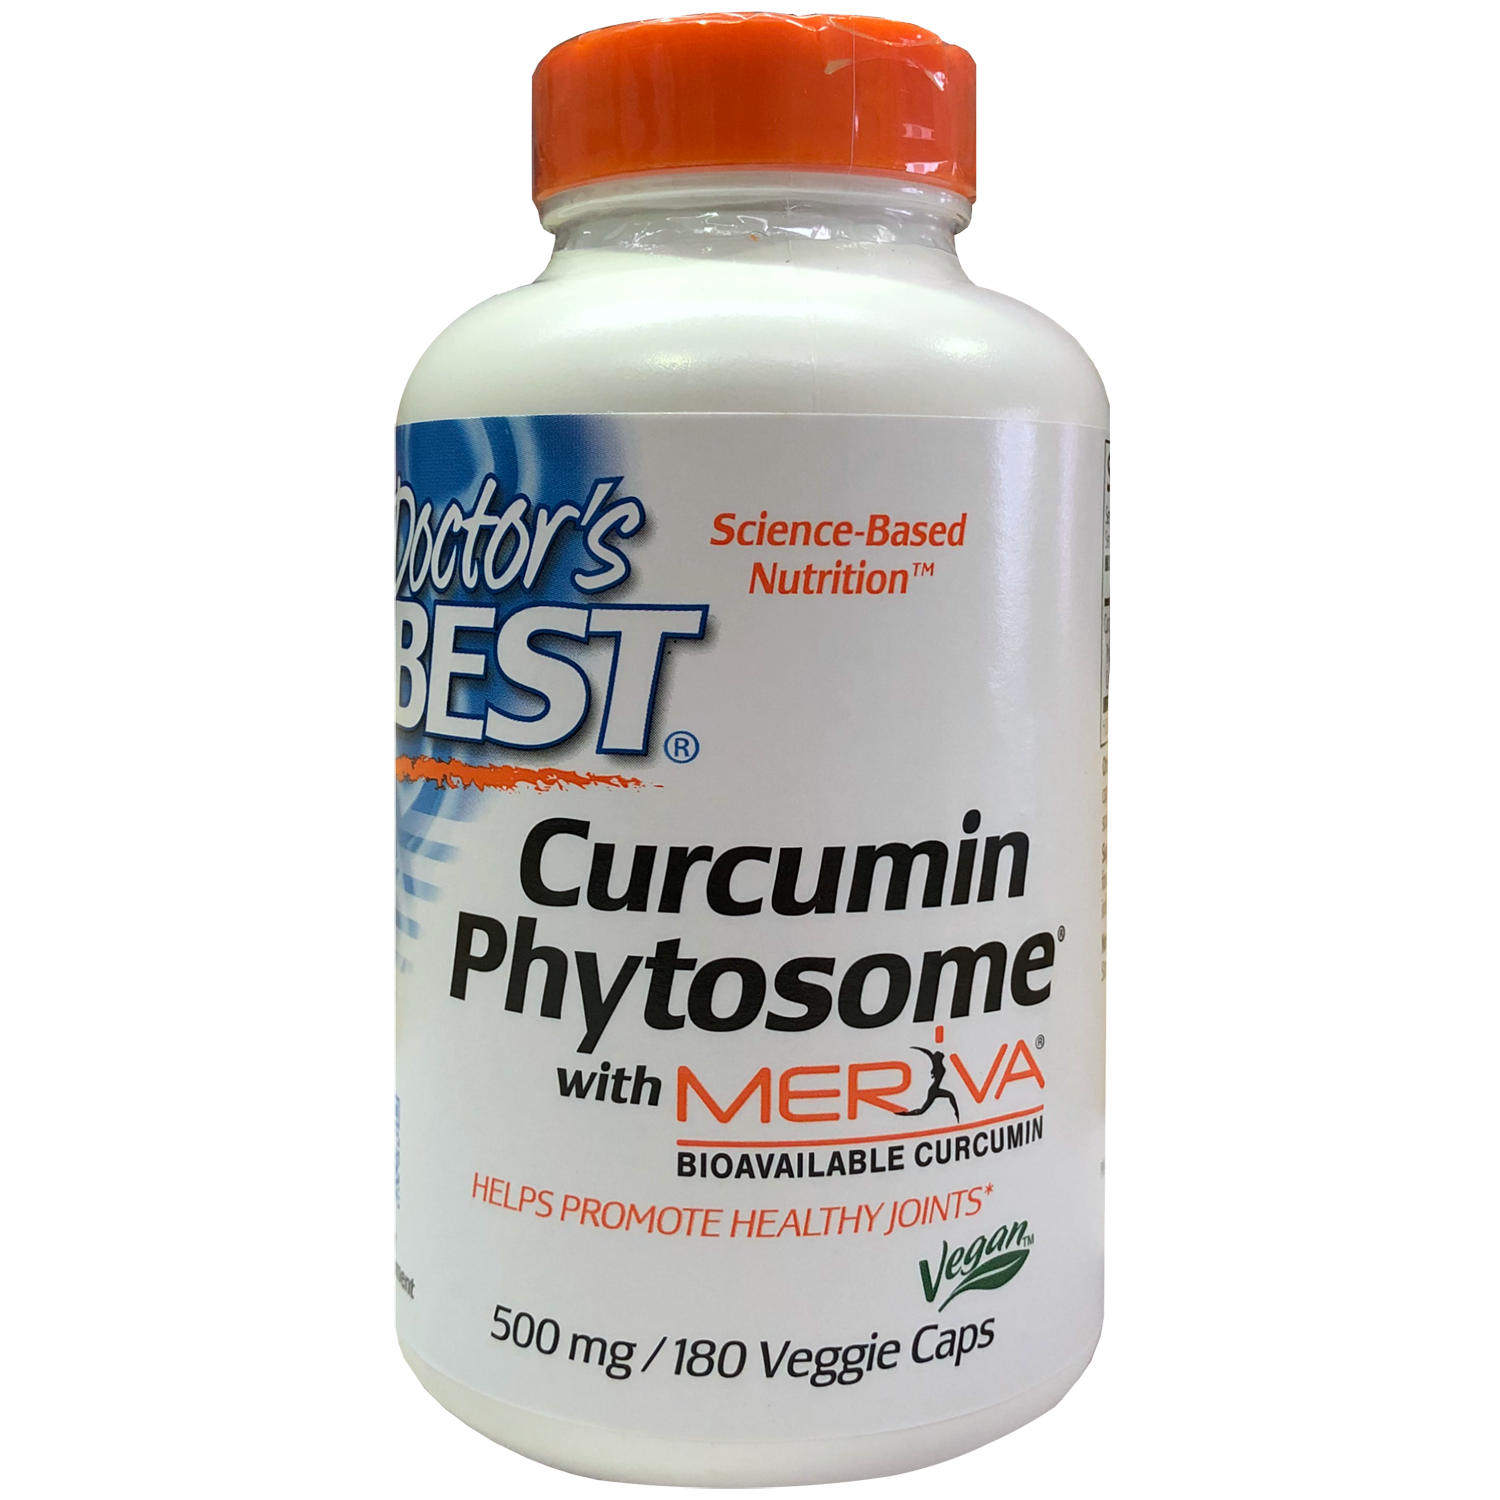 Doctor's Best Curcumin Phytosome featuring Meriva